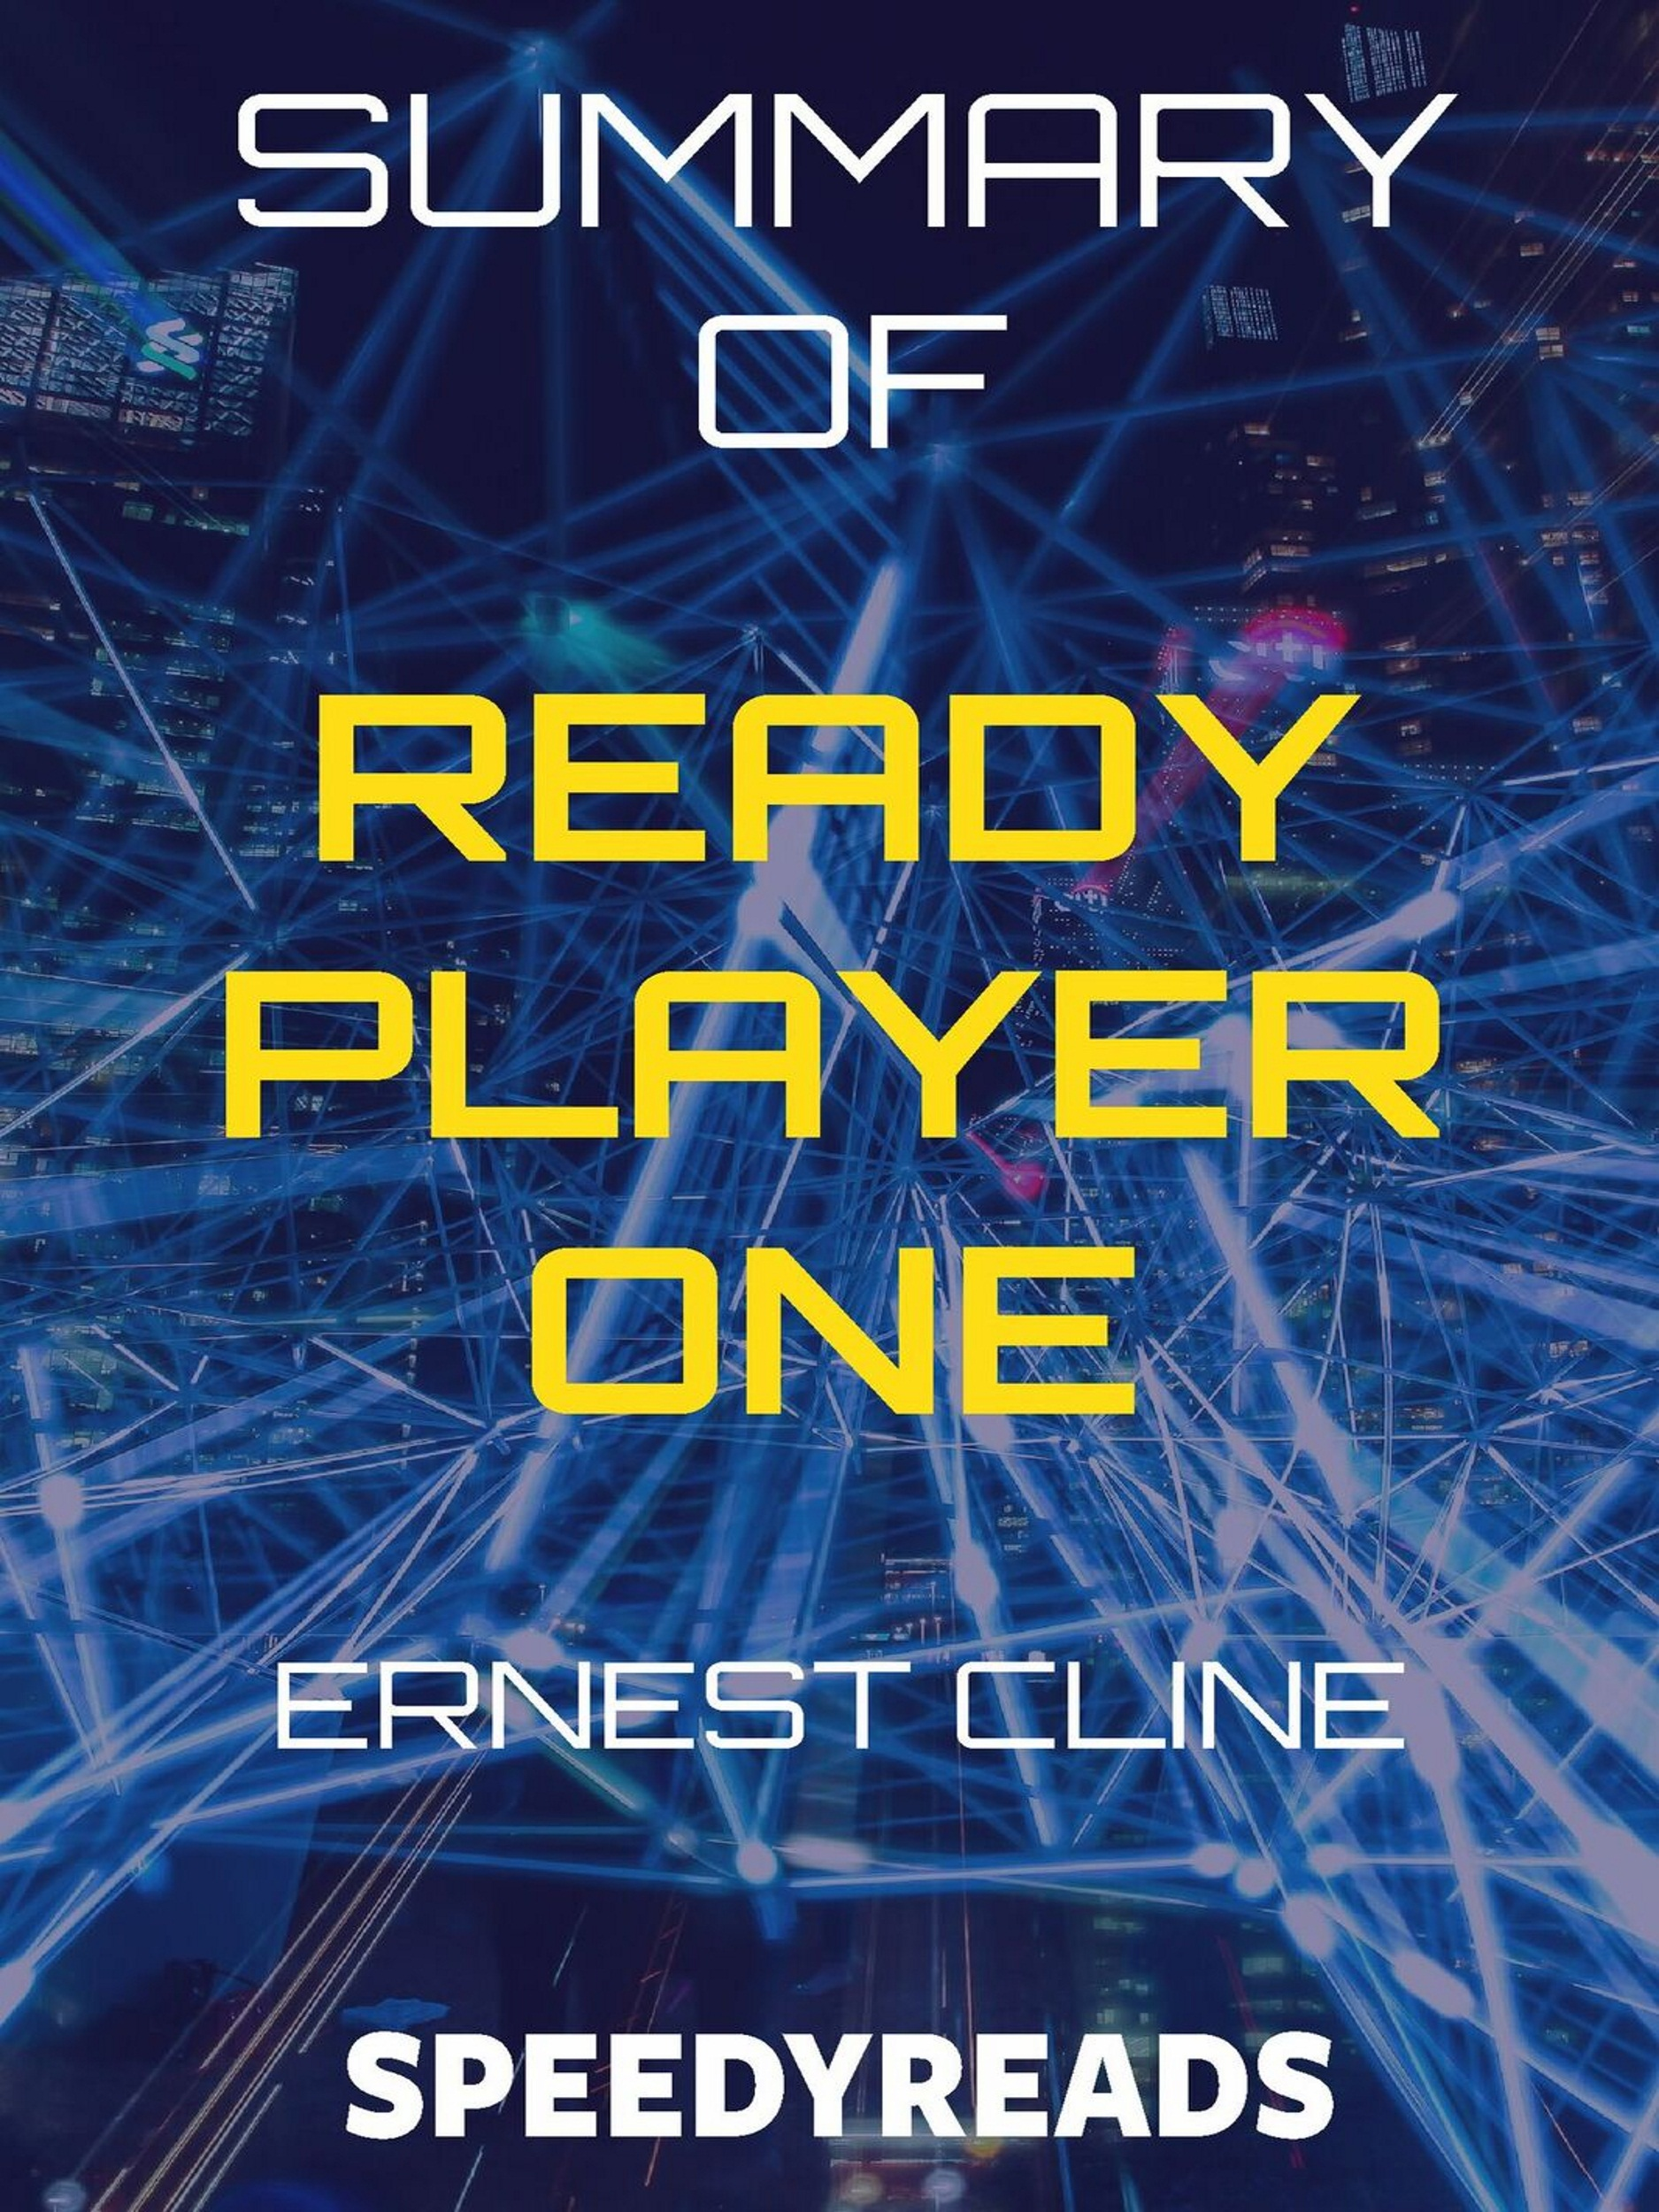 ready player one by ernest cline Written by ernest cline, narrated by wil wheaton download the app and start listening to ready player one today - free with a 30 day trial keep your audiobook forever, even if you cancel.